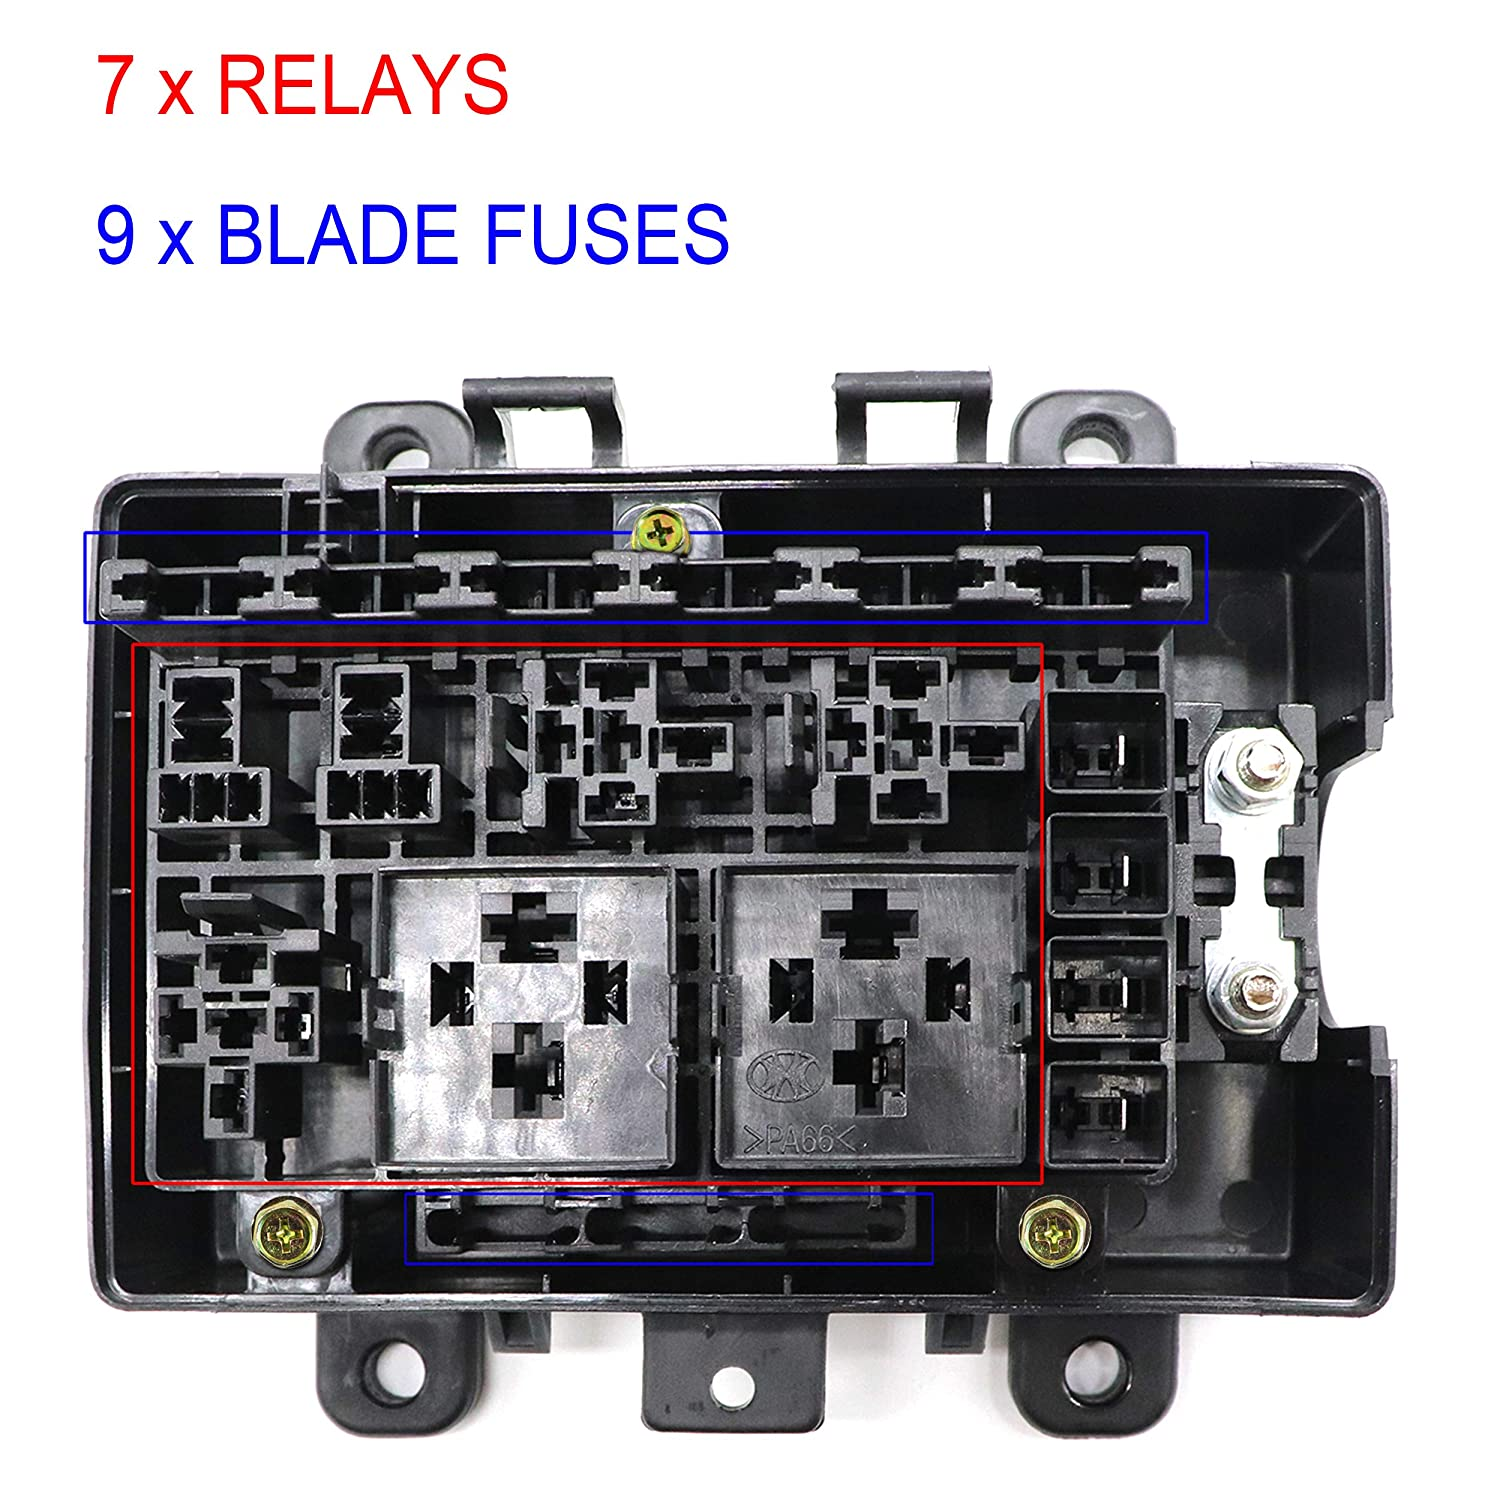 21-slot relay fuse box- relay ato/atc fuse holder with relays and